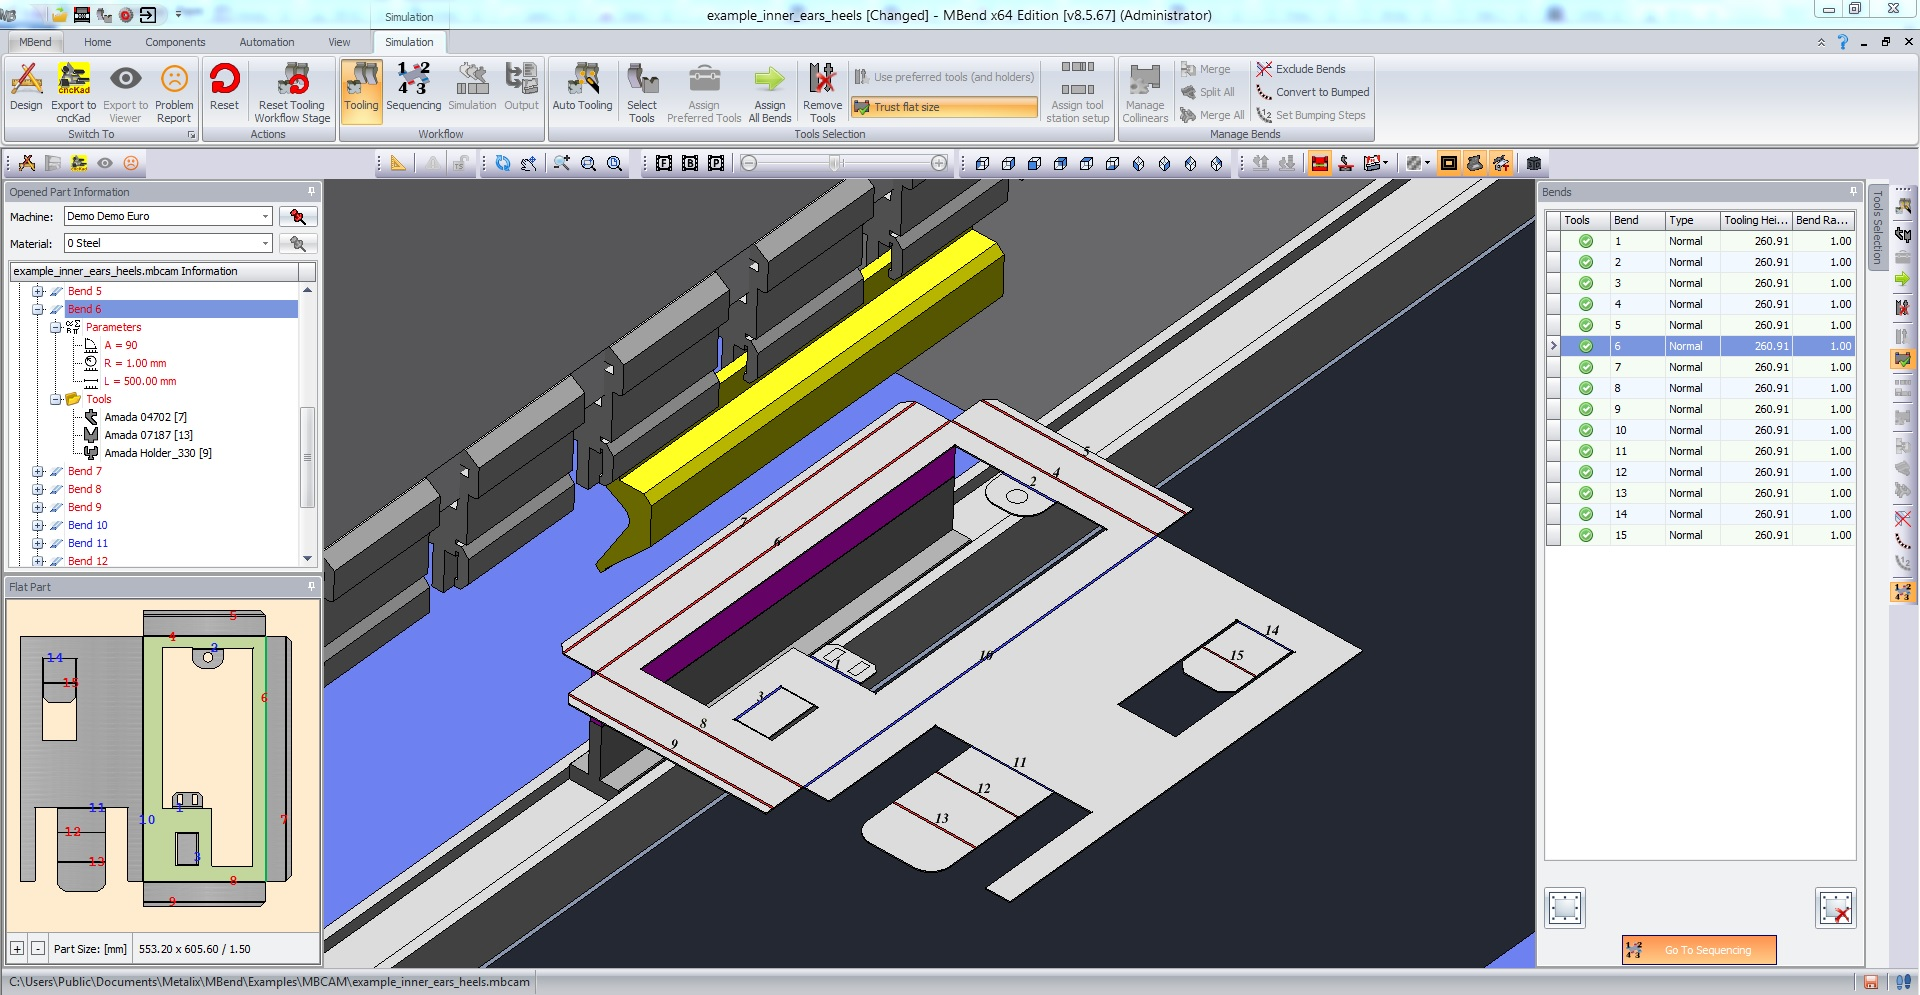 3D Simulation of Sheet Metal Part in MBend